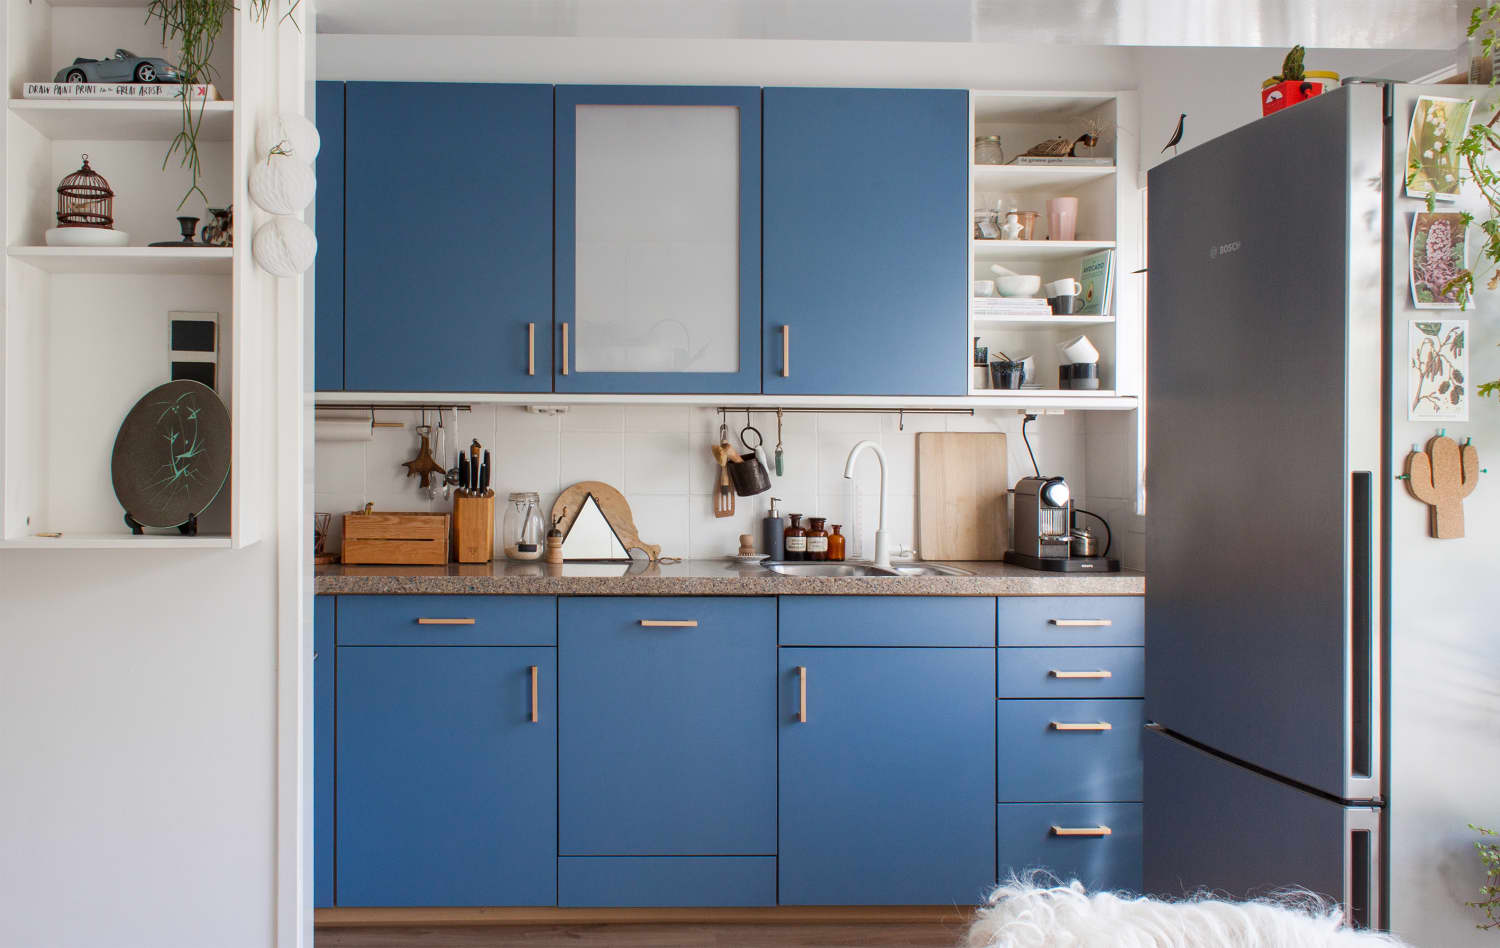 45 Of The Very Best Ideas Solutions For Your Small Kitchen